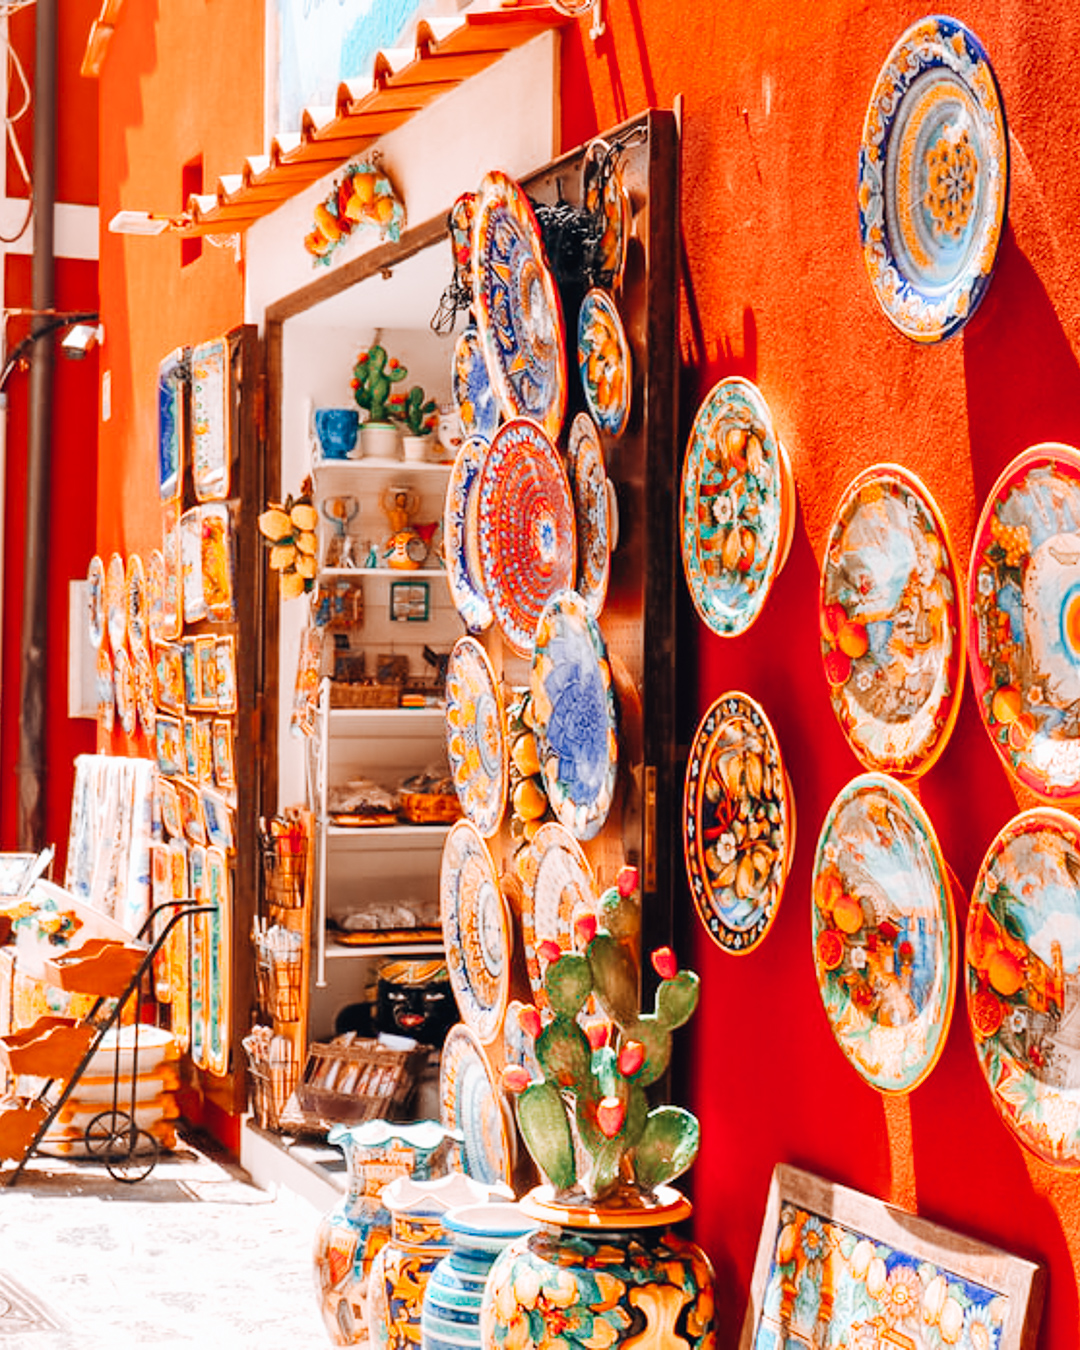 Shop with orange wall and souvenirs